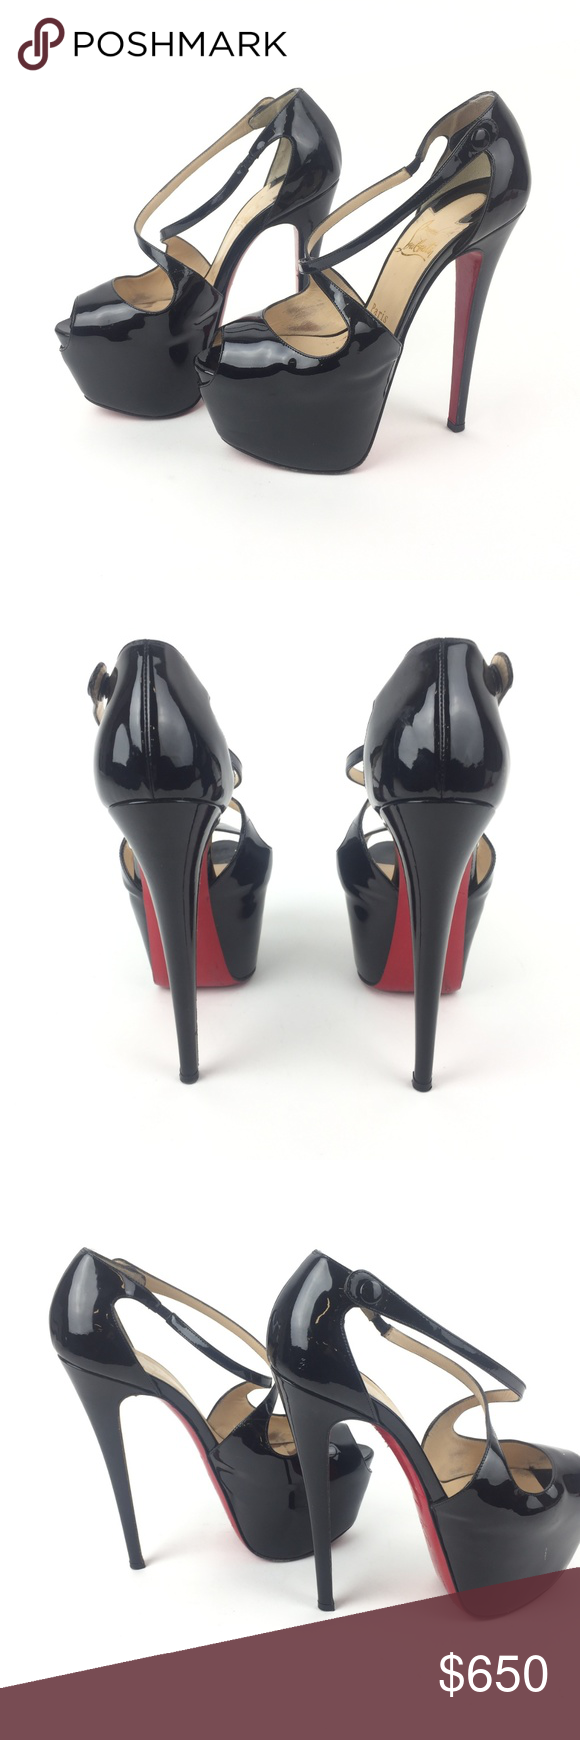 430cfaeabce Christian Louboutin Catchy two 120 Heels SZ 37 Black stiletto ...